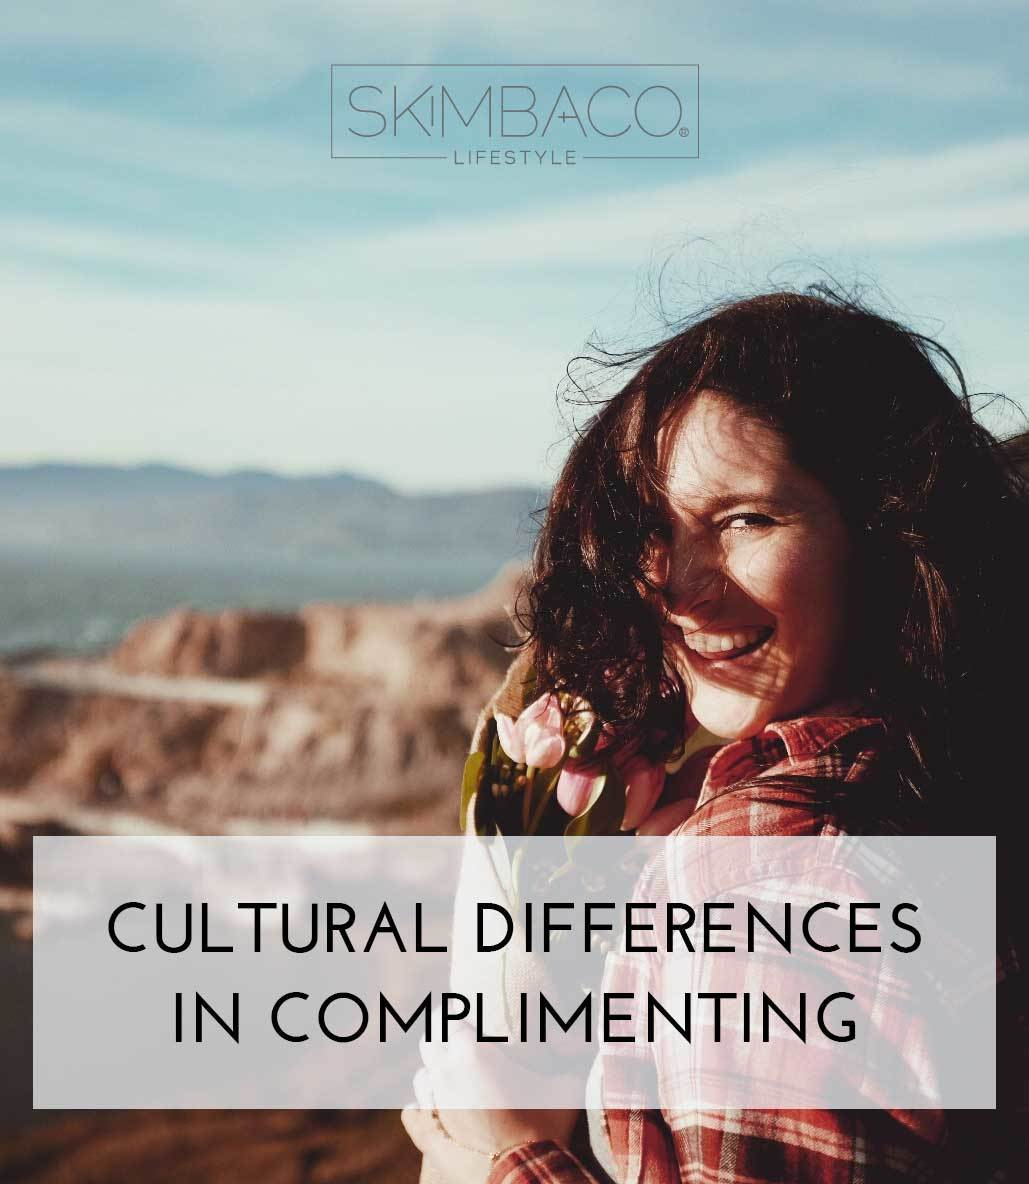 Cultural differences in complimenting